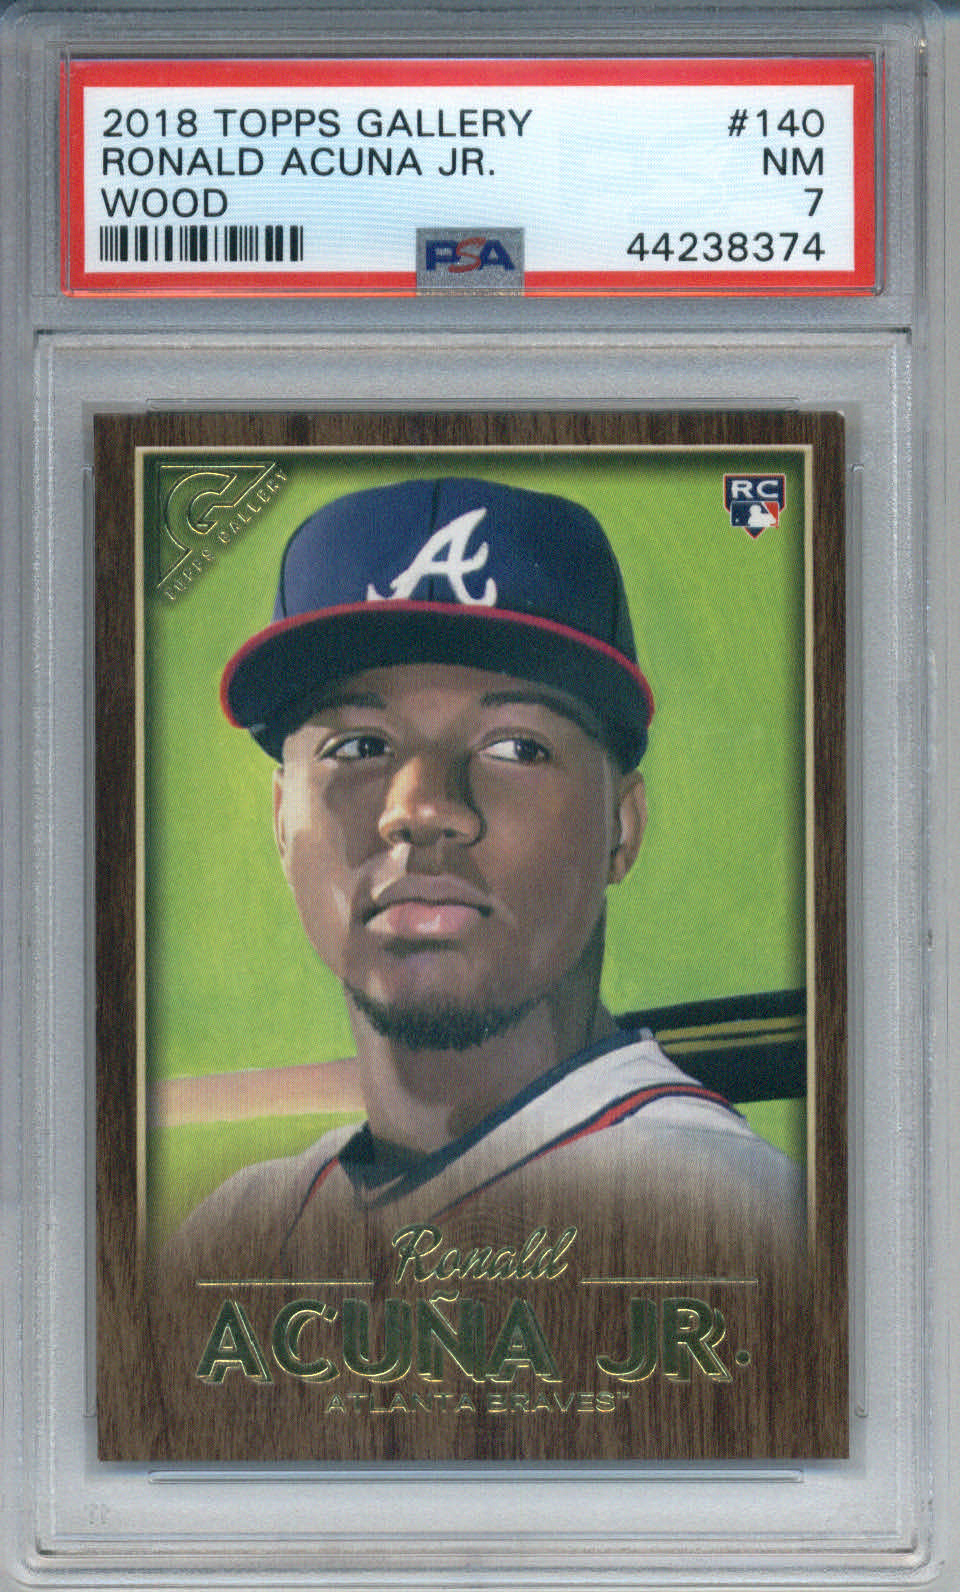 2018 Topps Gallery Wood #140 Ronald Acuna Jr. PSA 7